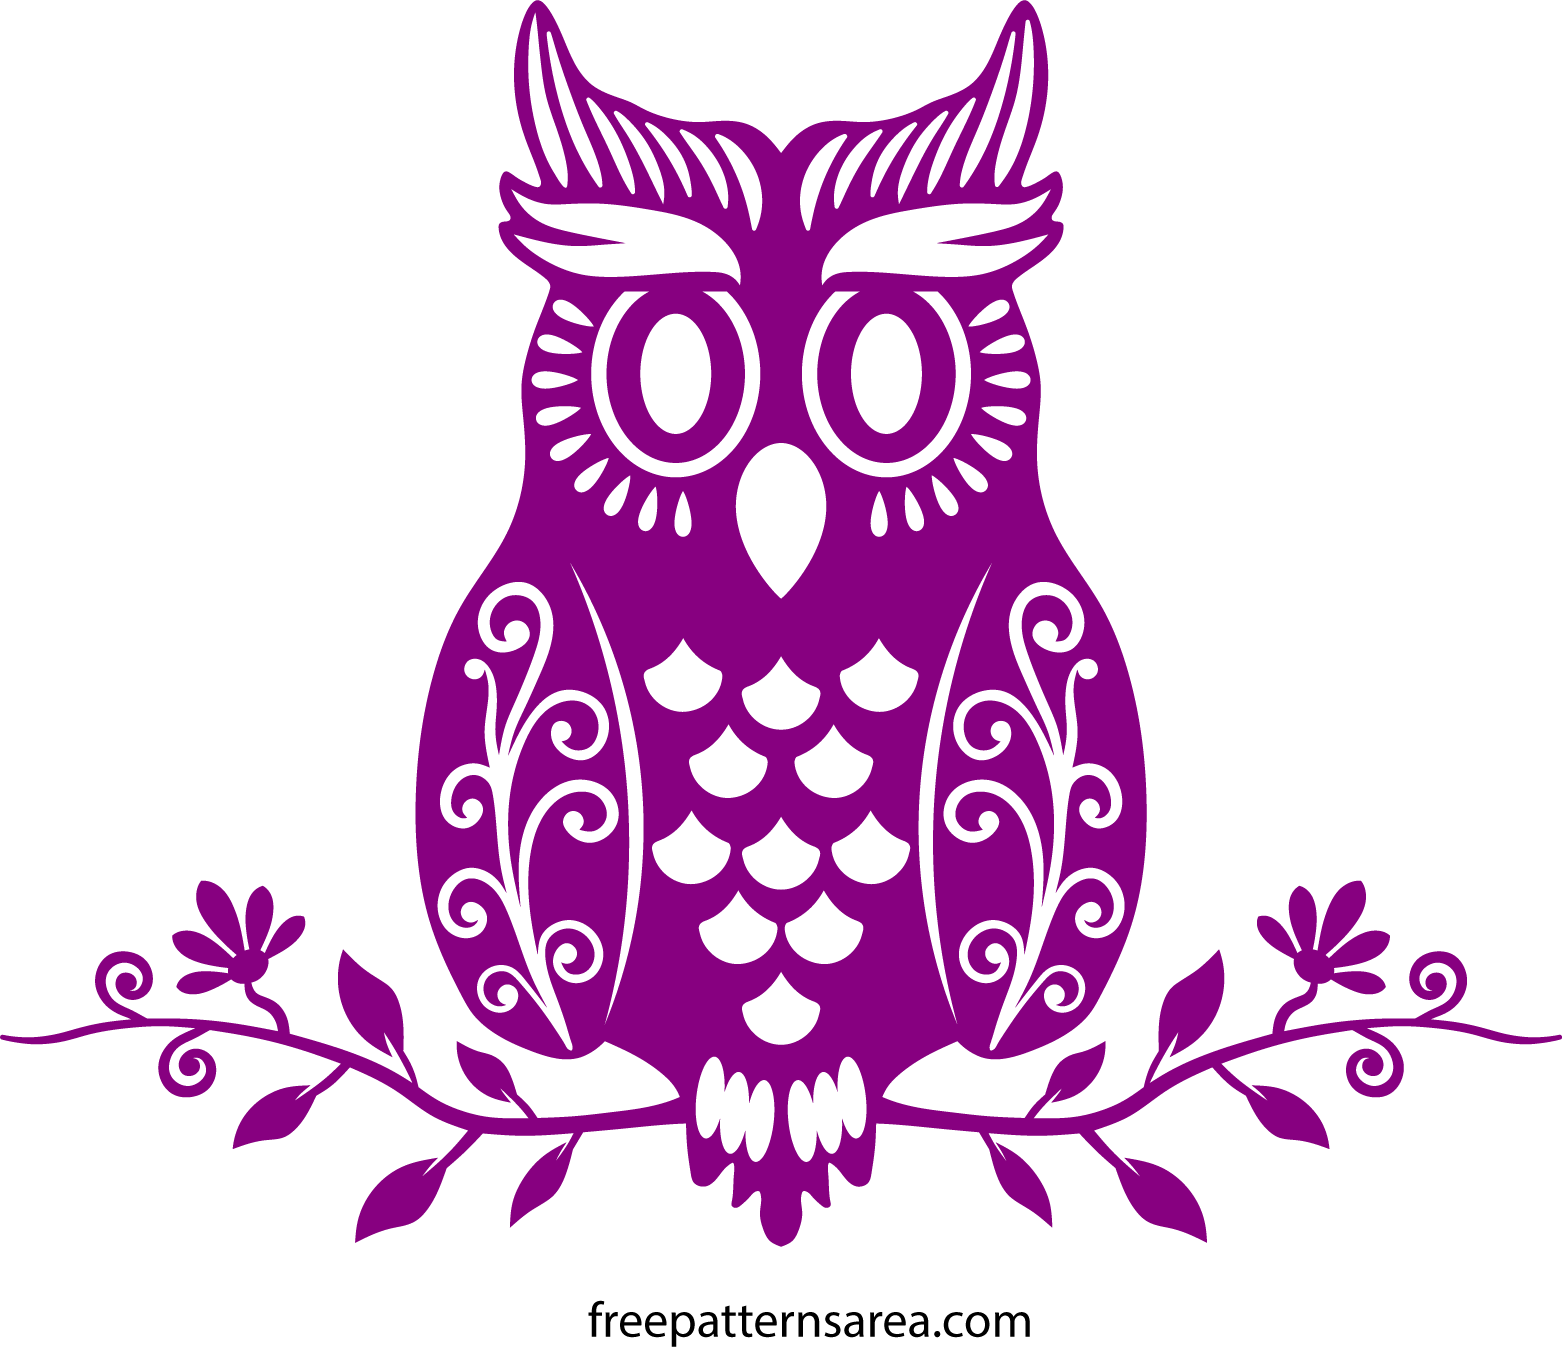 Cute Owl Stencil Png Free Cute Owl Stencil Png Transparent Images 144522 Pngio